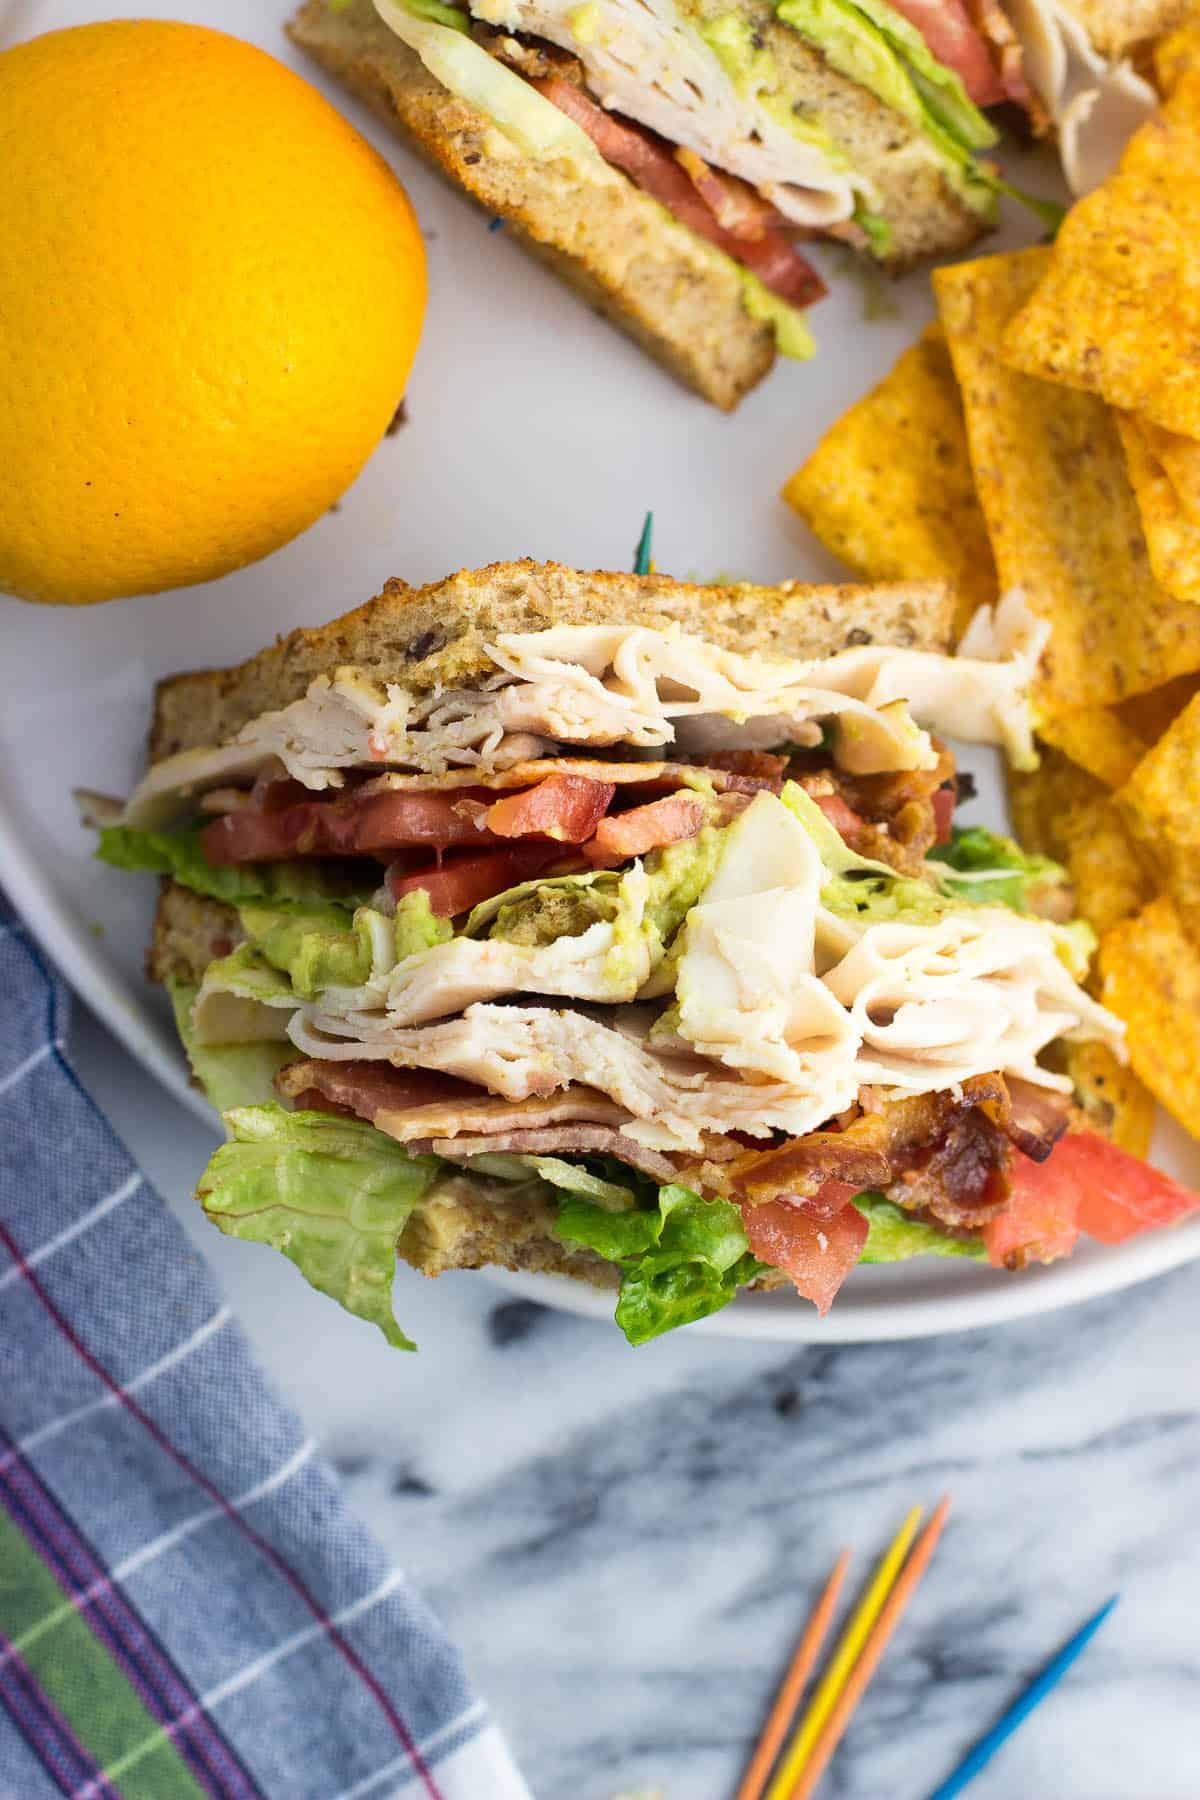 An overhead view of one sandwich half on a plate with chips and an orange.